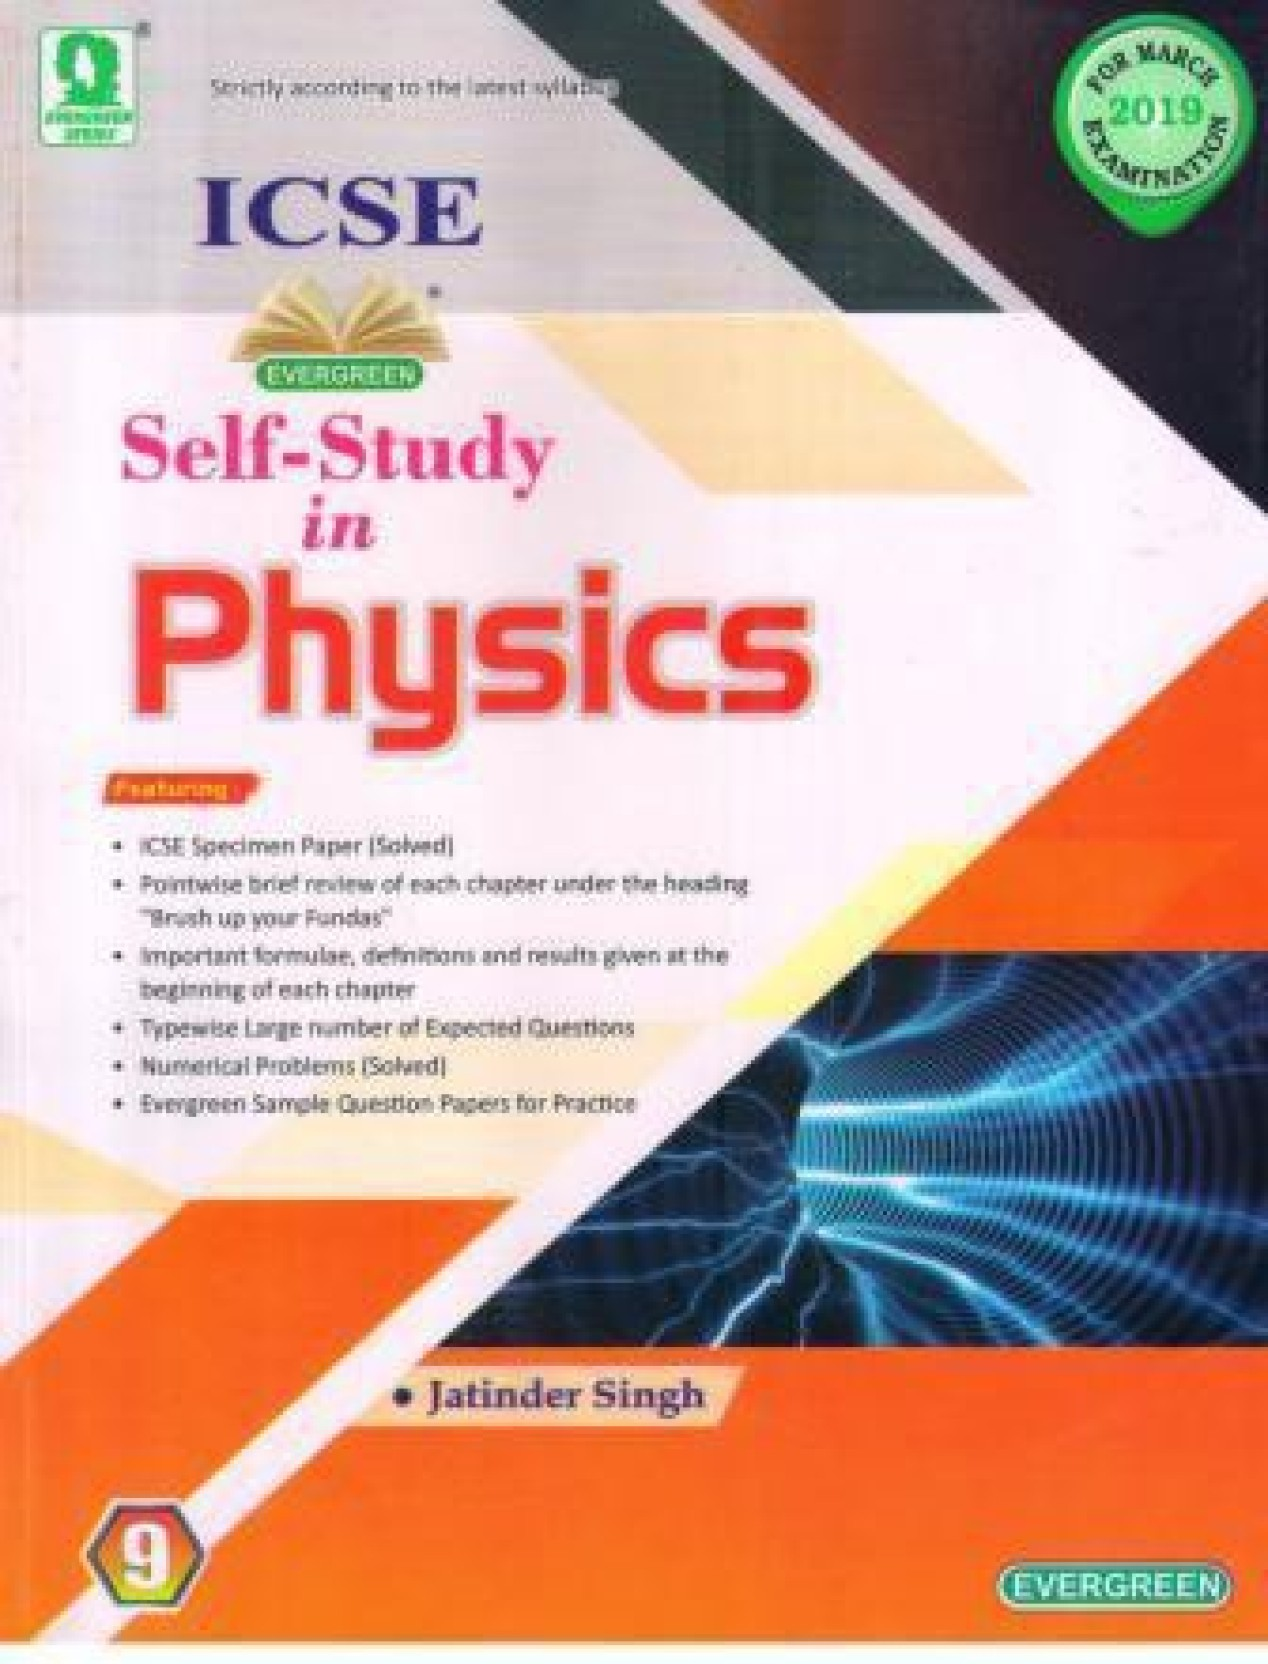 ICSE Self Study in Physics Class 9: Buy ICSE Self Study in Physics